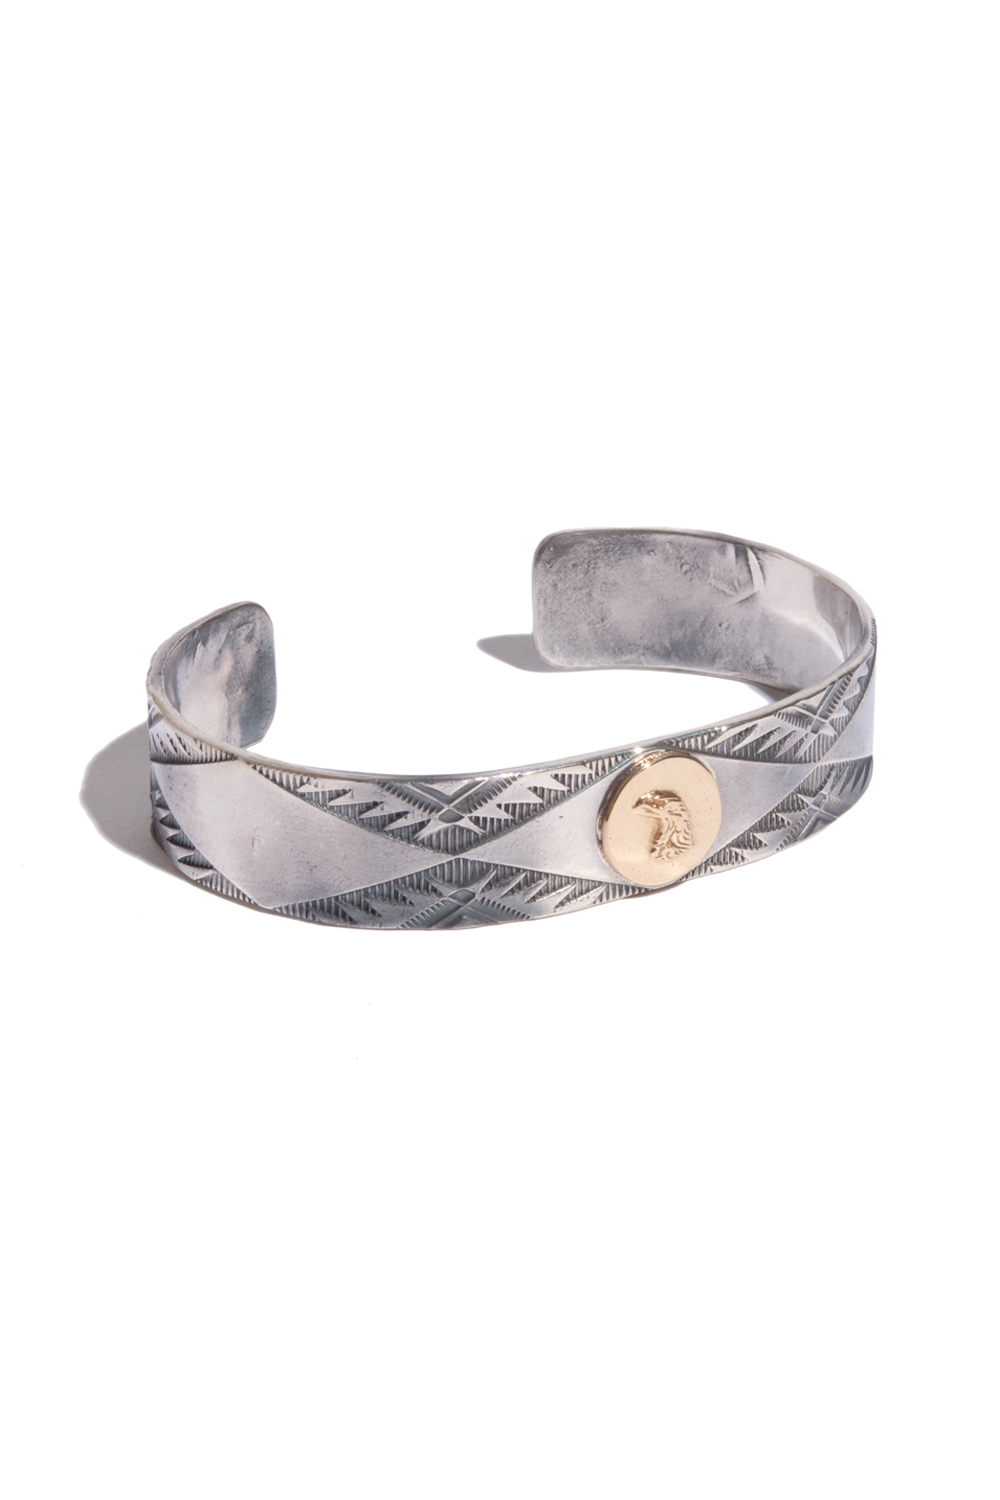 画像1: 【LARRY SMITH】 18K EAGLE FACE STAMP BANGLE (1)